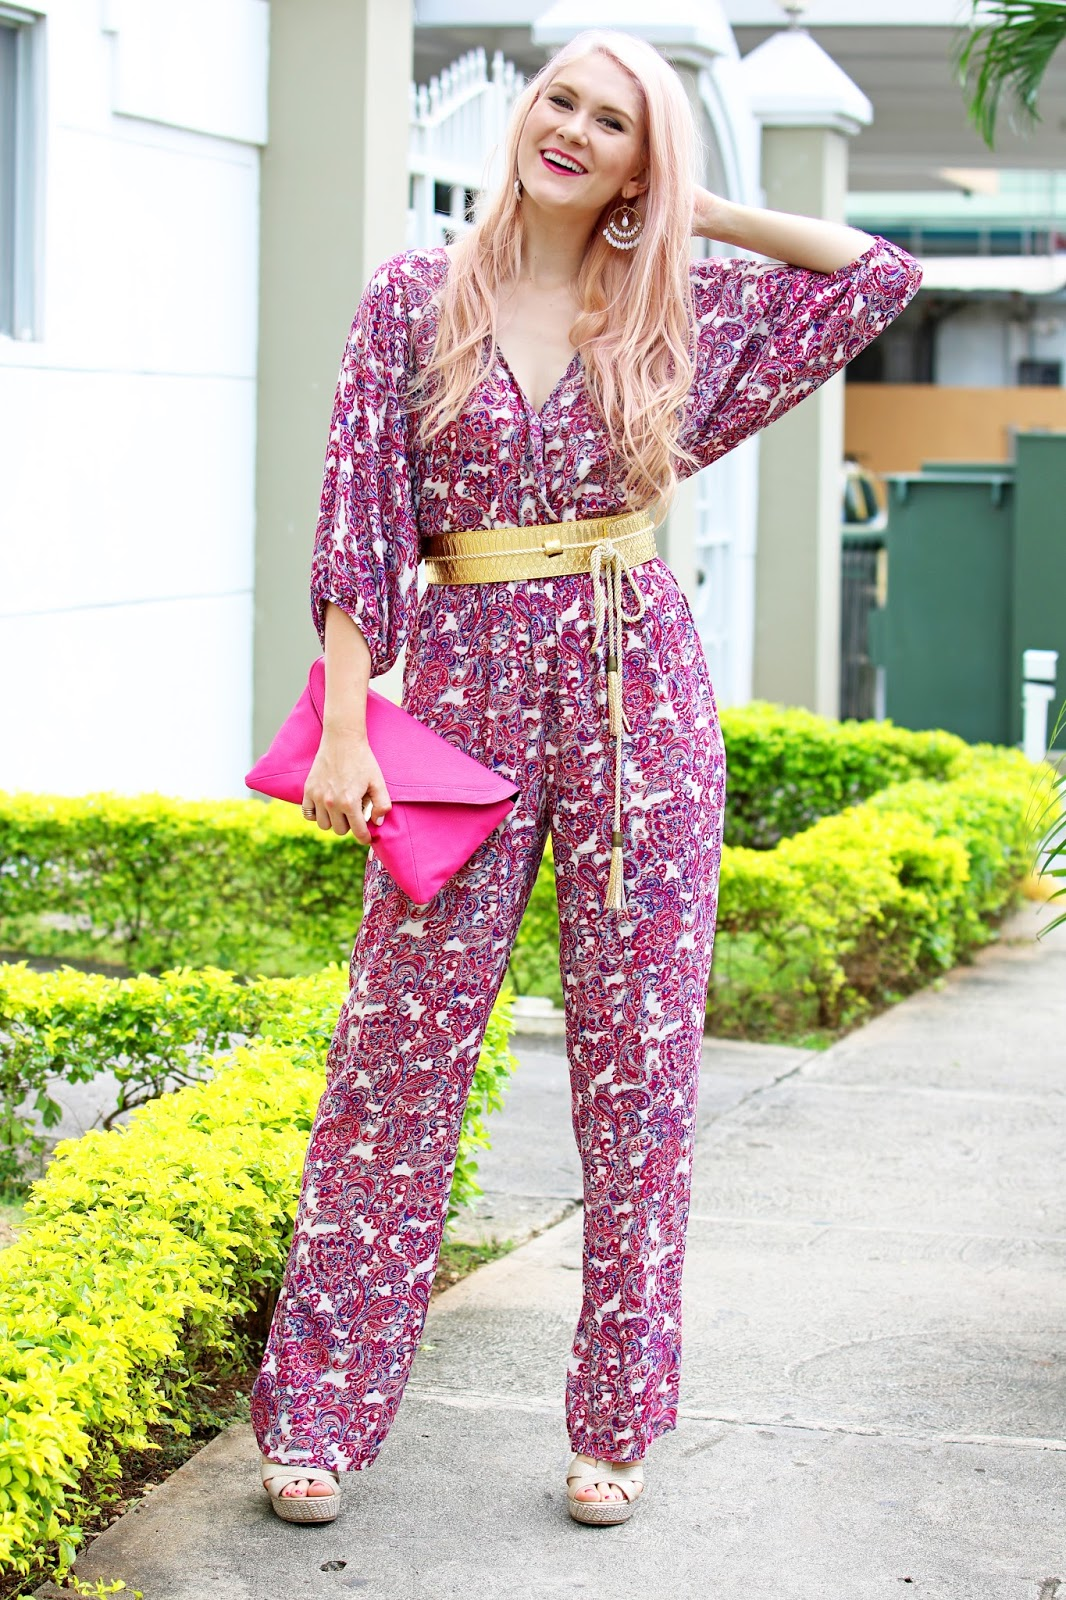 Pretty jumpsuit outfit for Spring or Summer